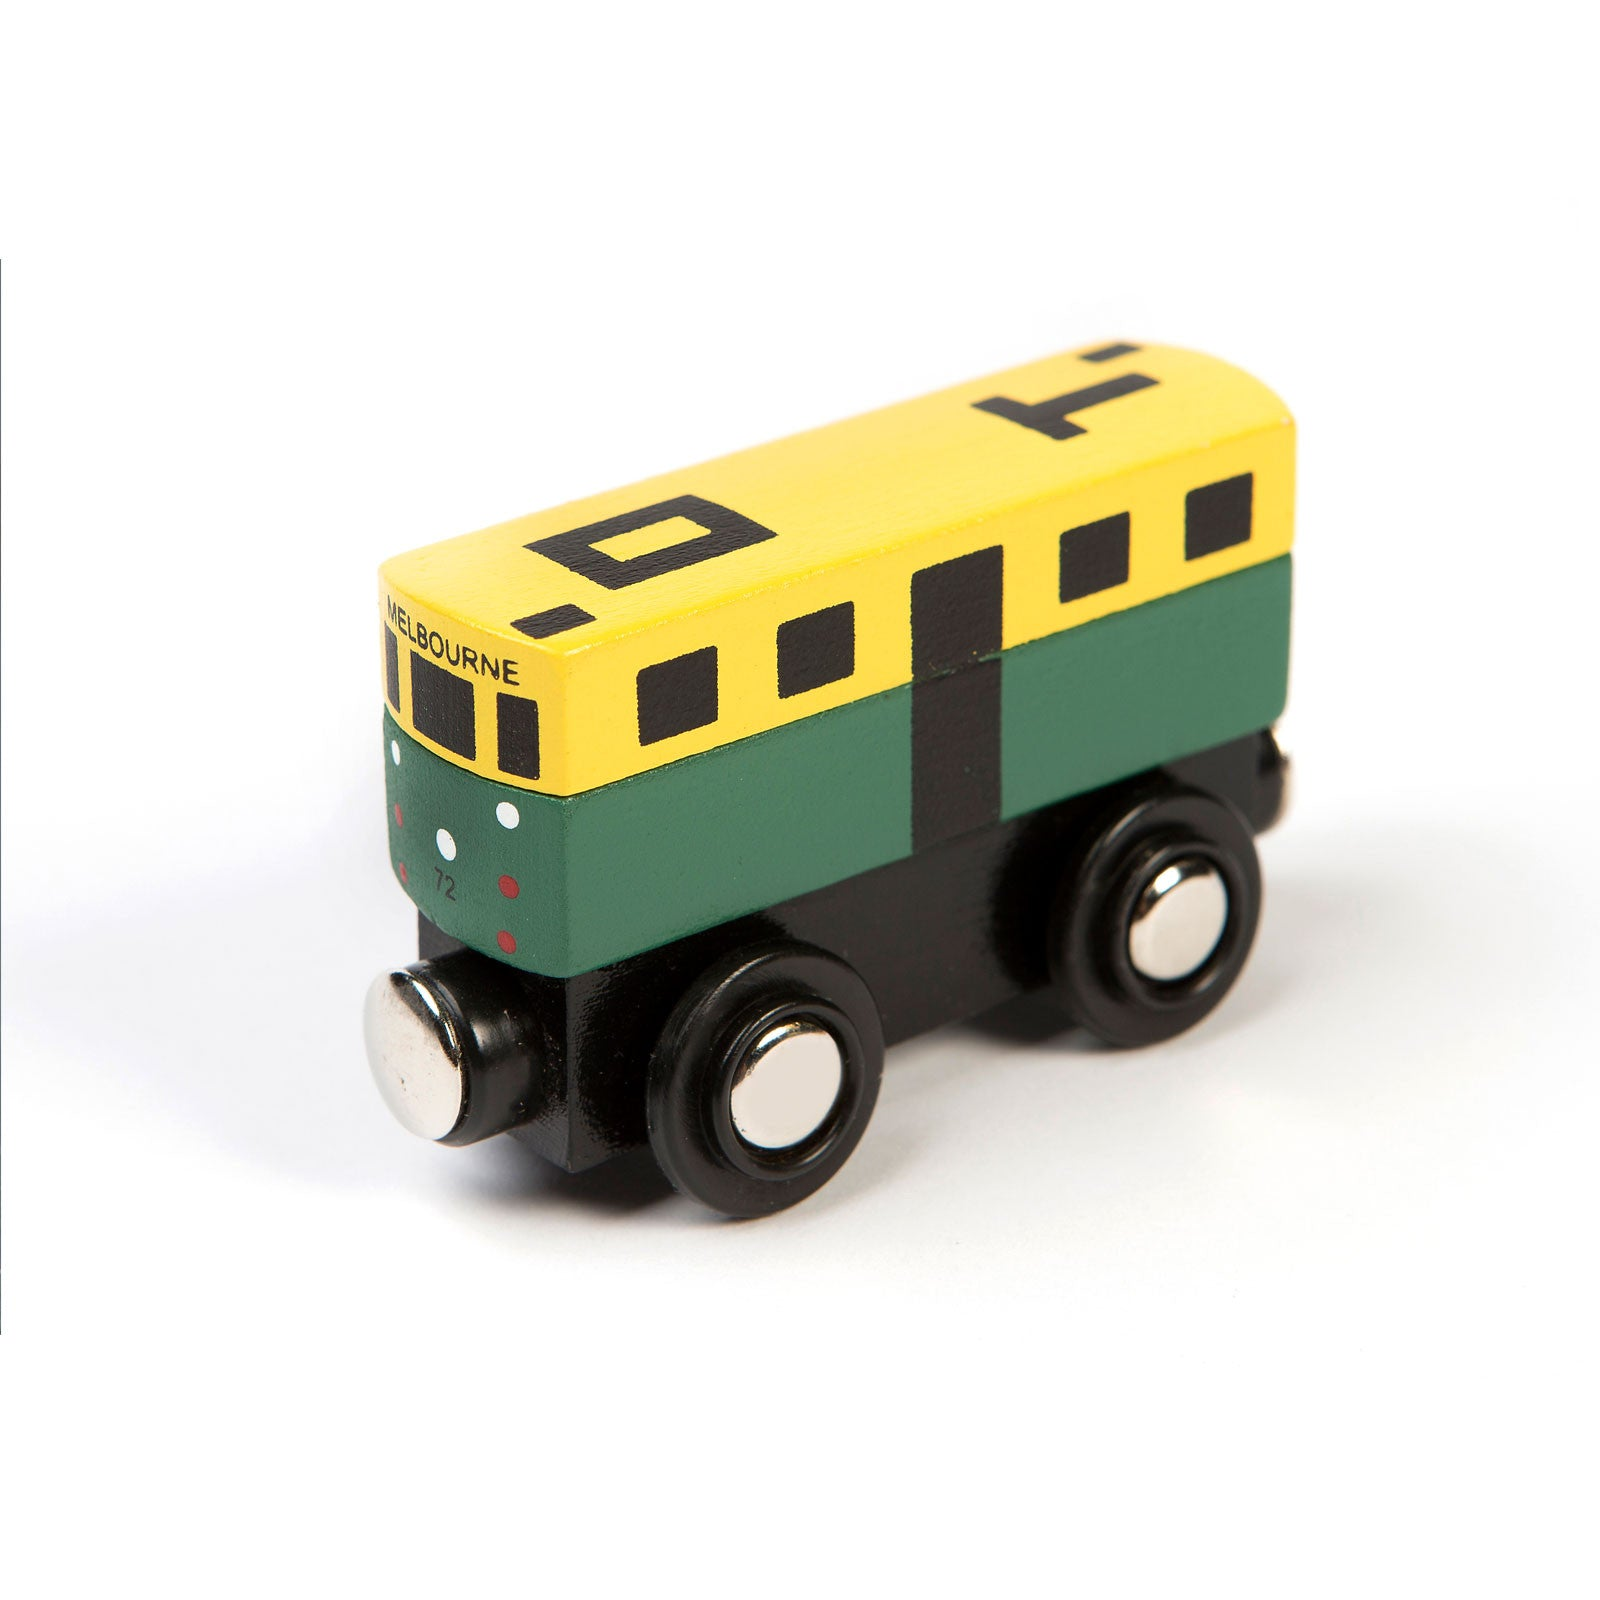 Make Me Iconic Mini Tram Make Me Iconic Play Vehicles at Little Earth Nest Eco Shop